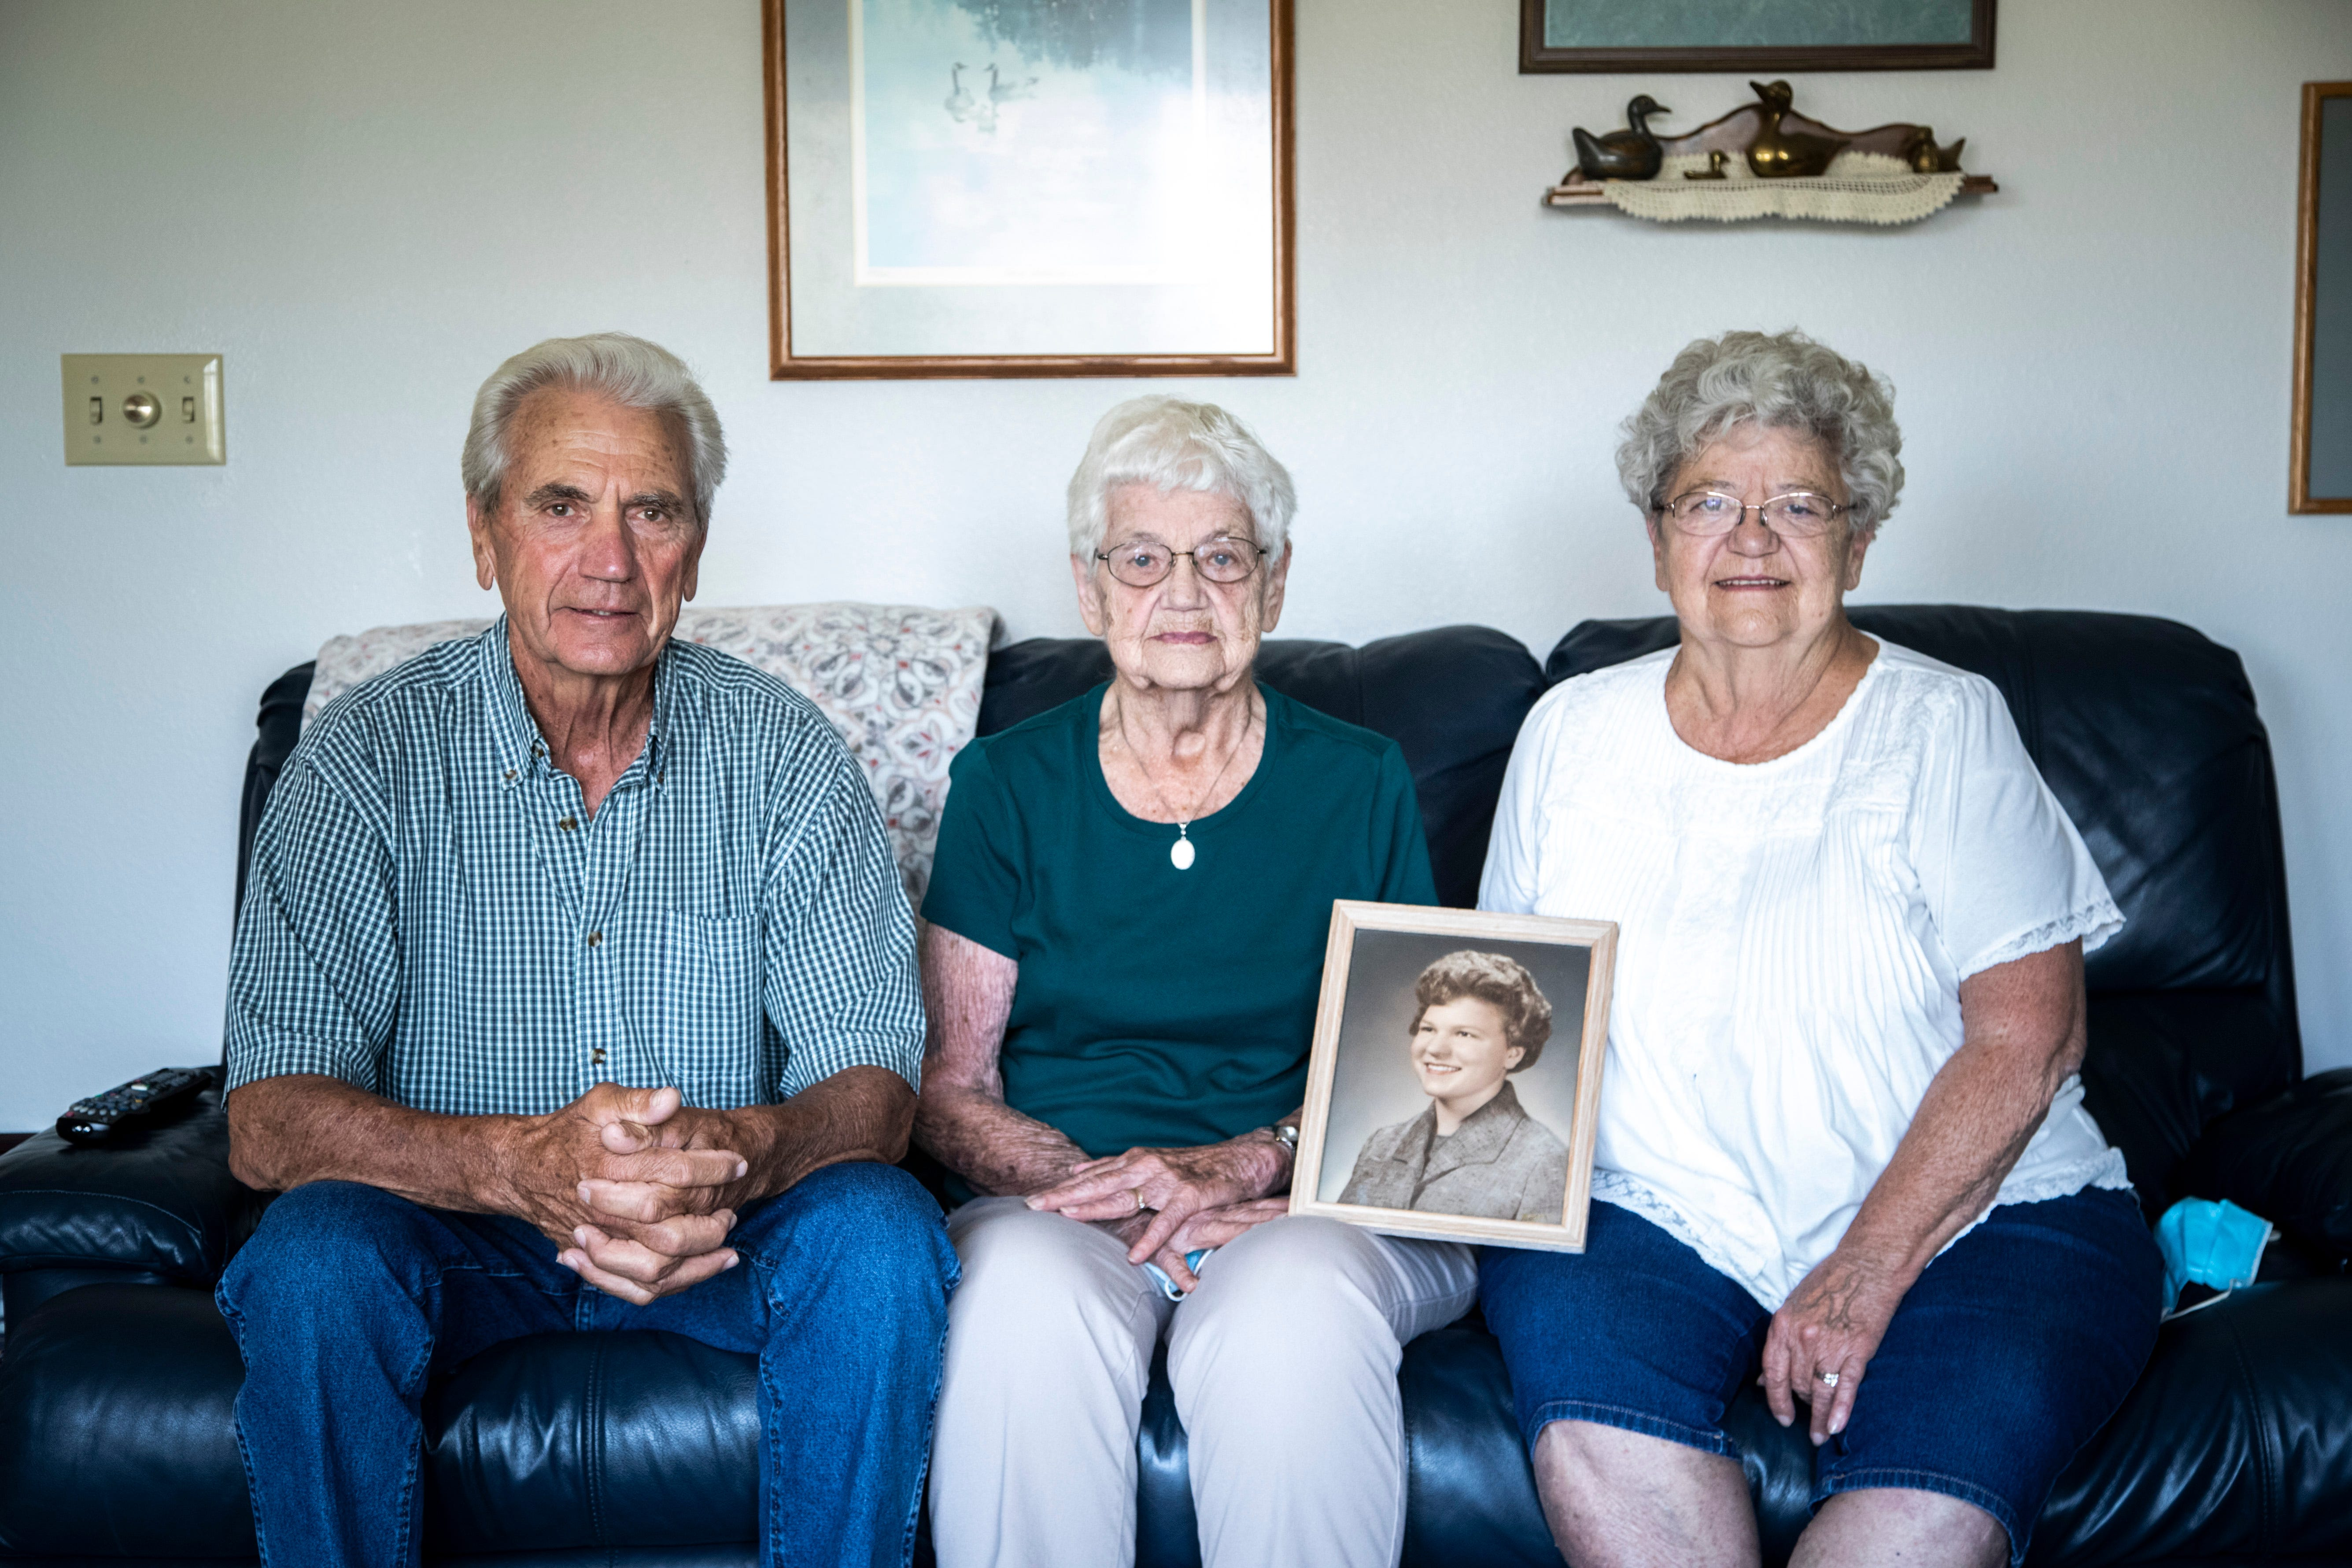 Siblings Jim Harney, Mary Ellen Glouhy and Virigina Ockenfels pose for a photo with a portrait of their sister, Theresa Harney.